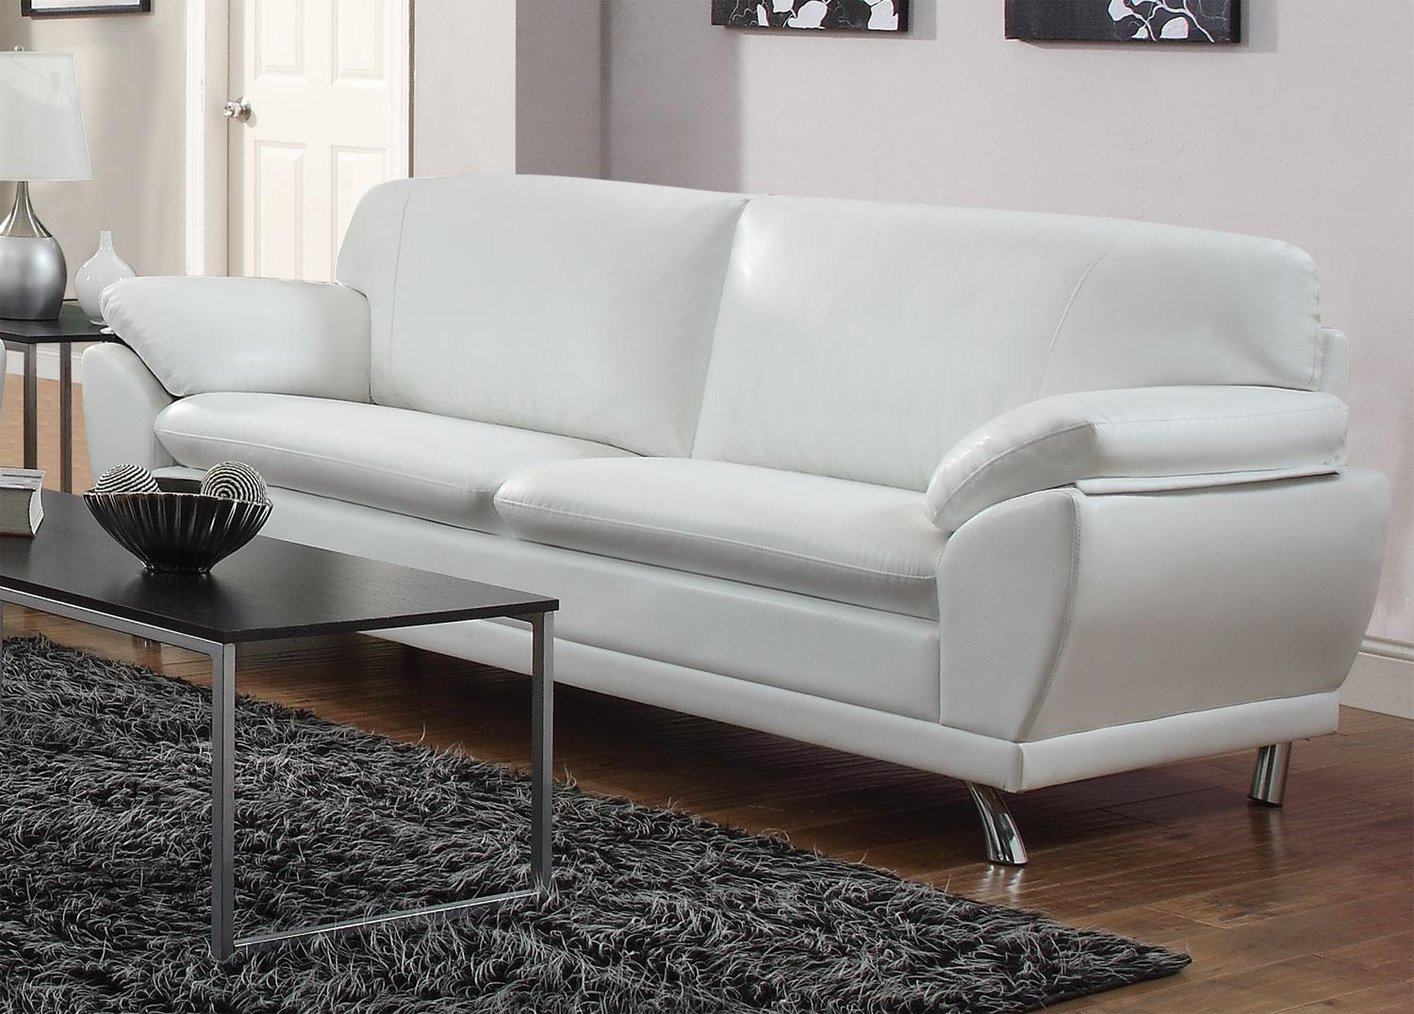 robyn white leather sofa - White Leather Sofa